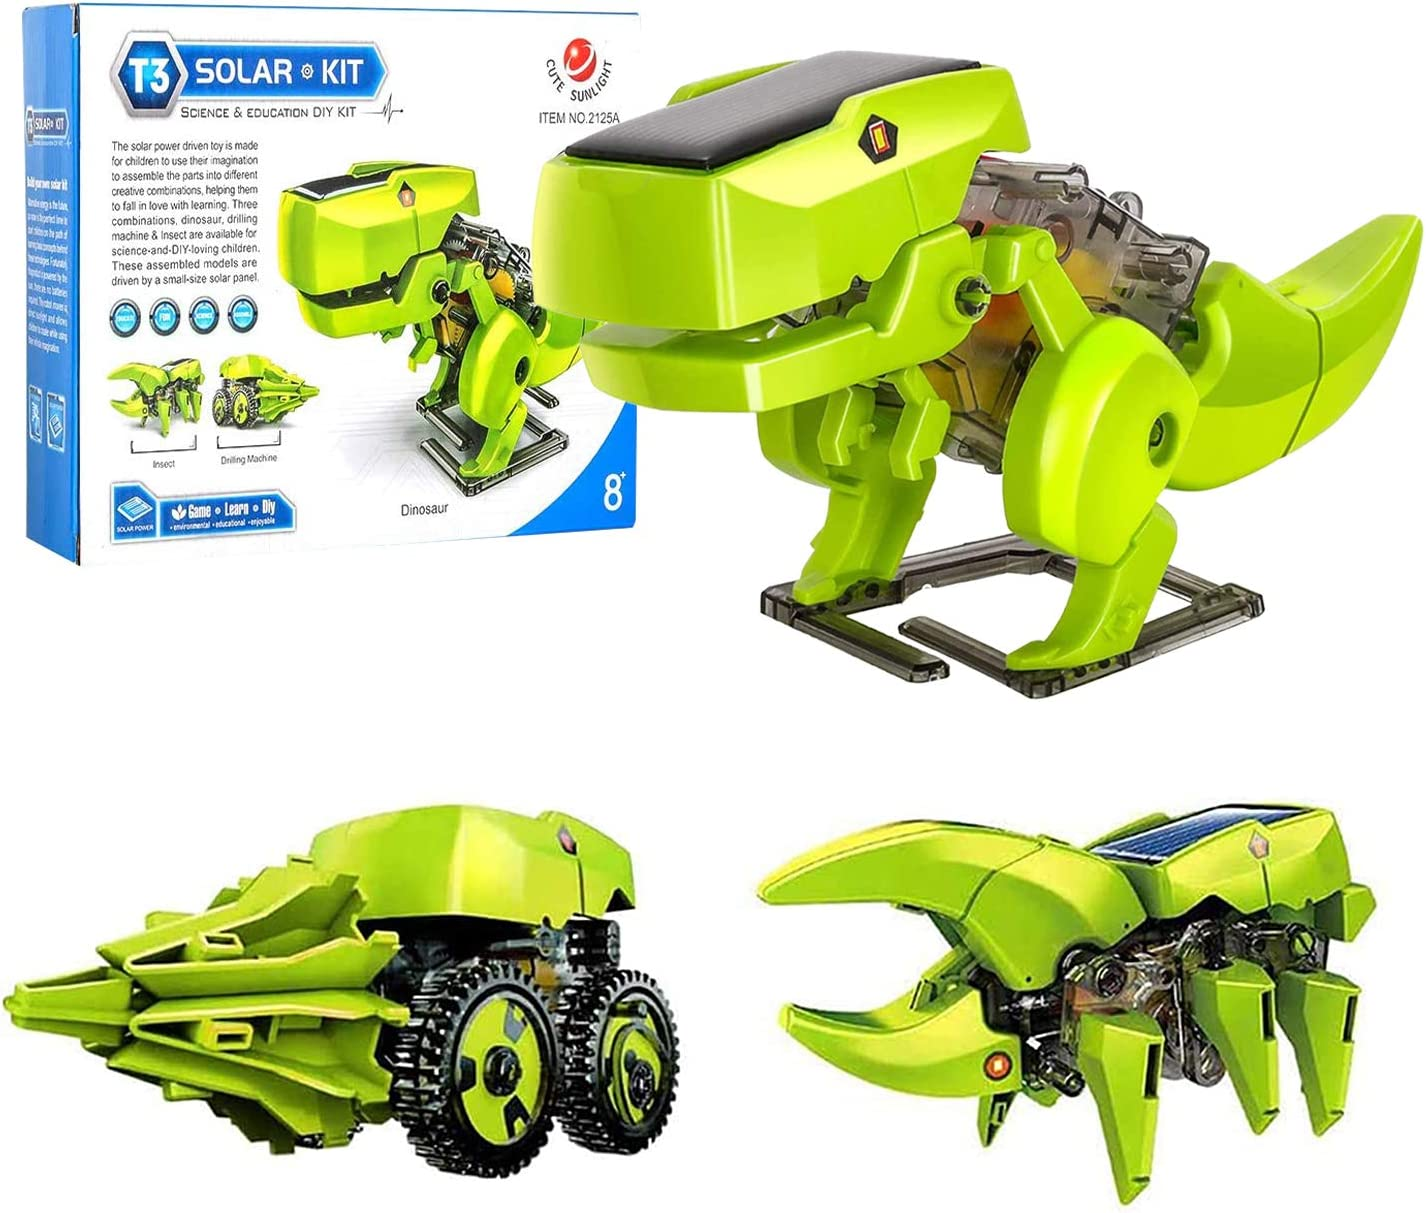 3-in-1 Science 70% OFF Outlet Robot Building Kit Build STEM Di Toys Tampa Mall Power Solar